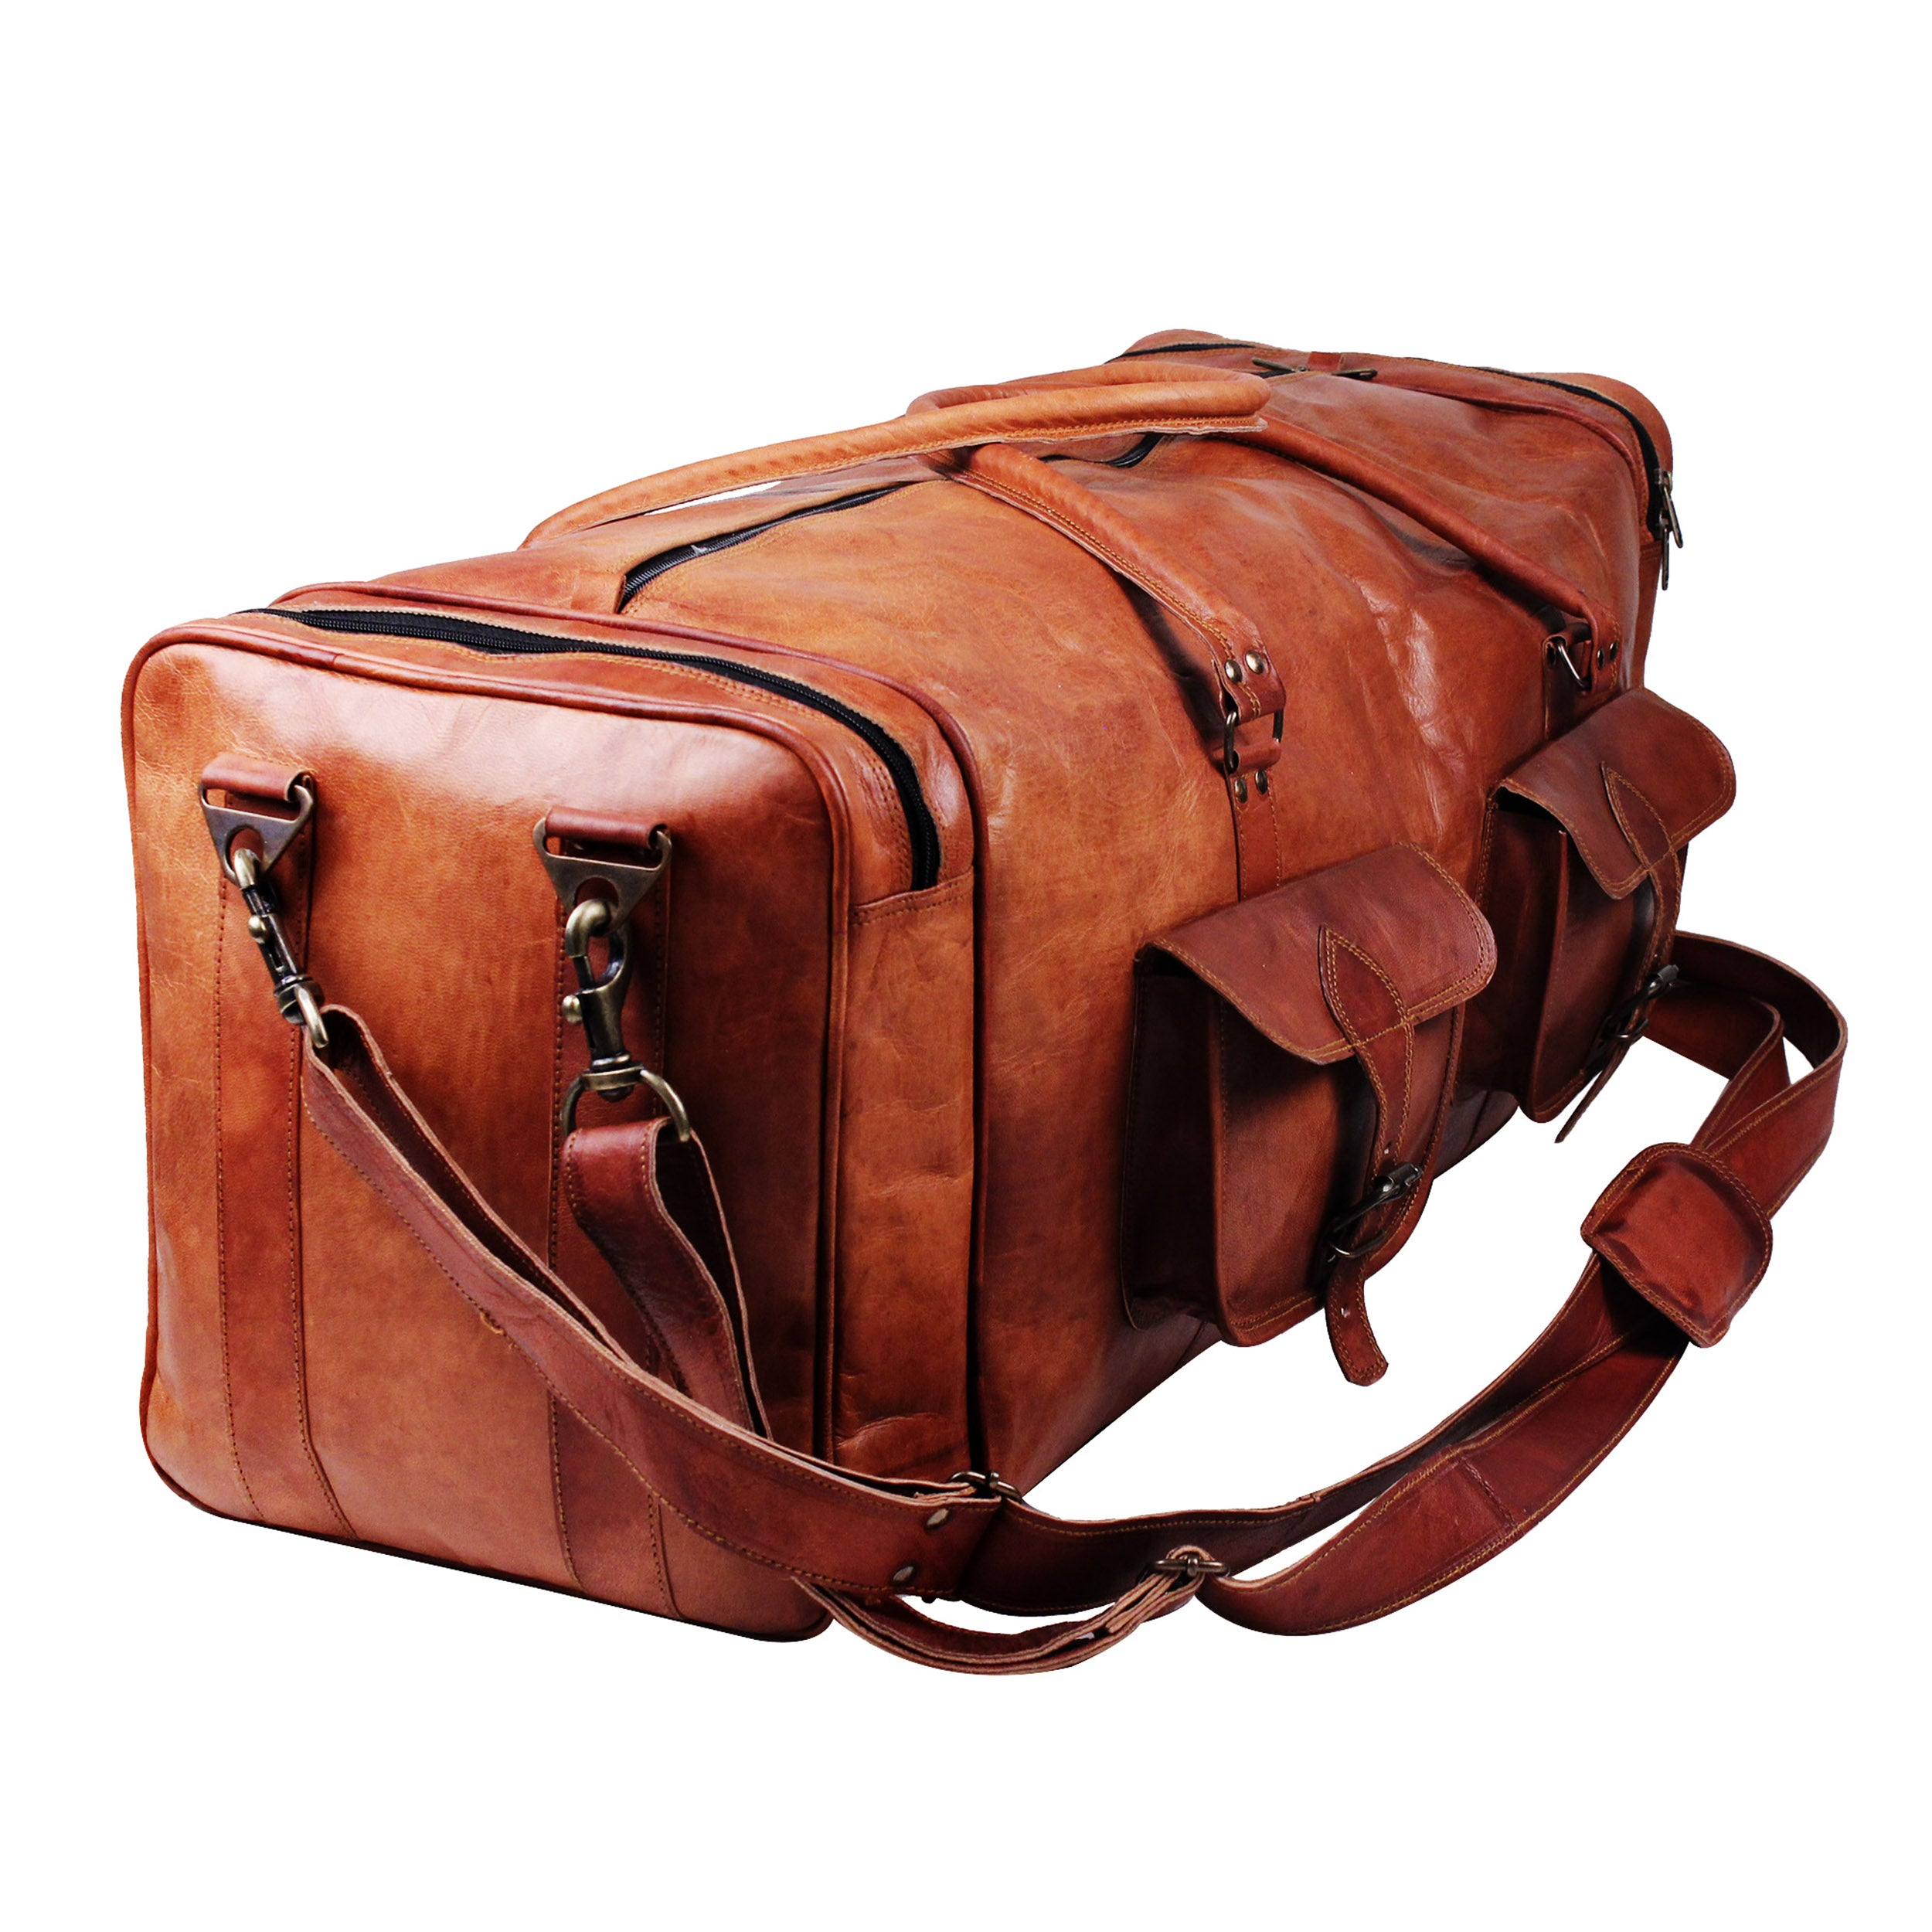 Genuine leather large duffel bag with adjustable strap